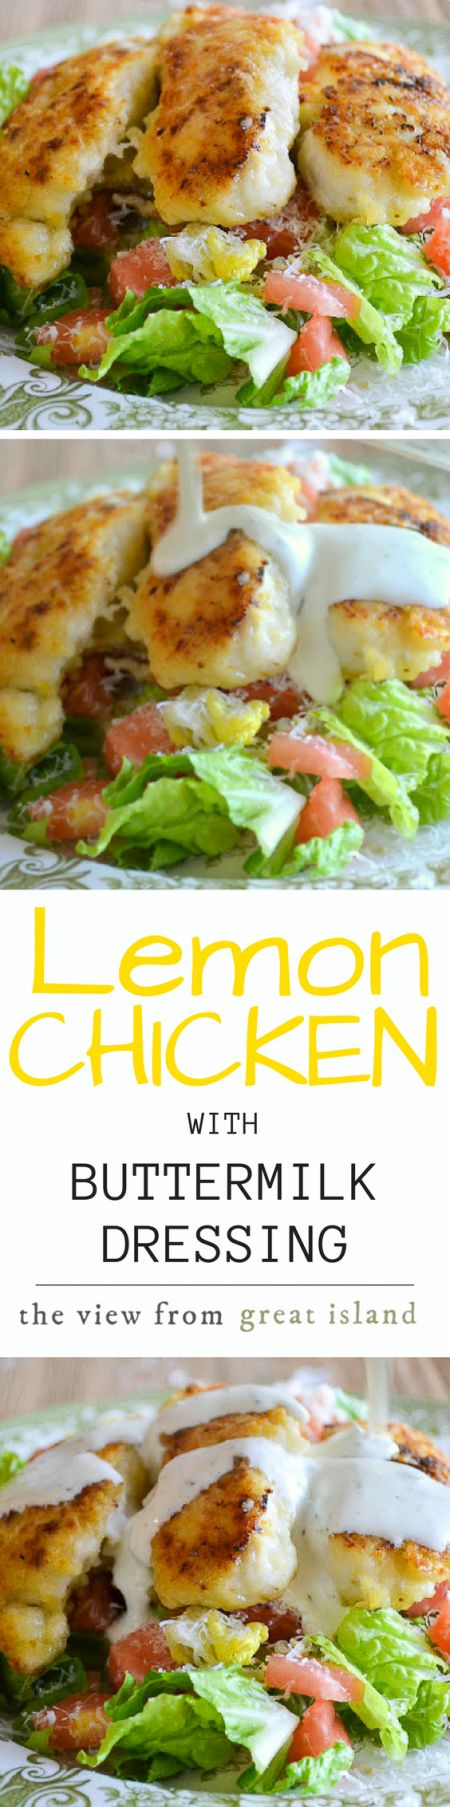 THIS Lemon Chicken with Buttermilk Dressing is one of my most requested recipes ~ the tender crispy chicken on top of a fresh salad and drenched in creamy buttermilk dressing is hard to beat! | salad | Ina Garten | chicken tenders | main course salad